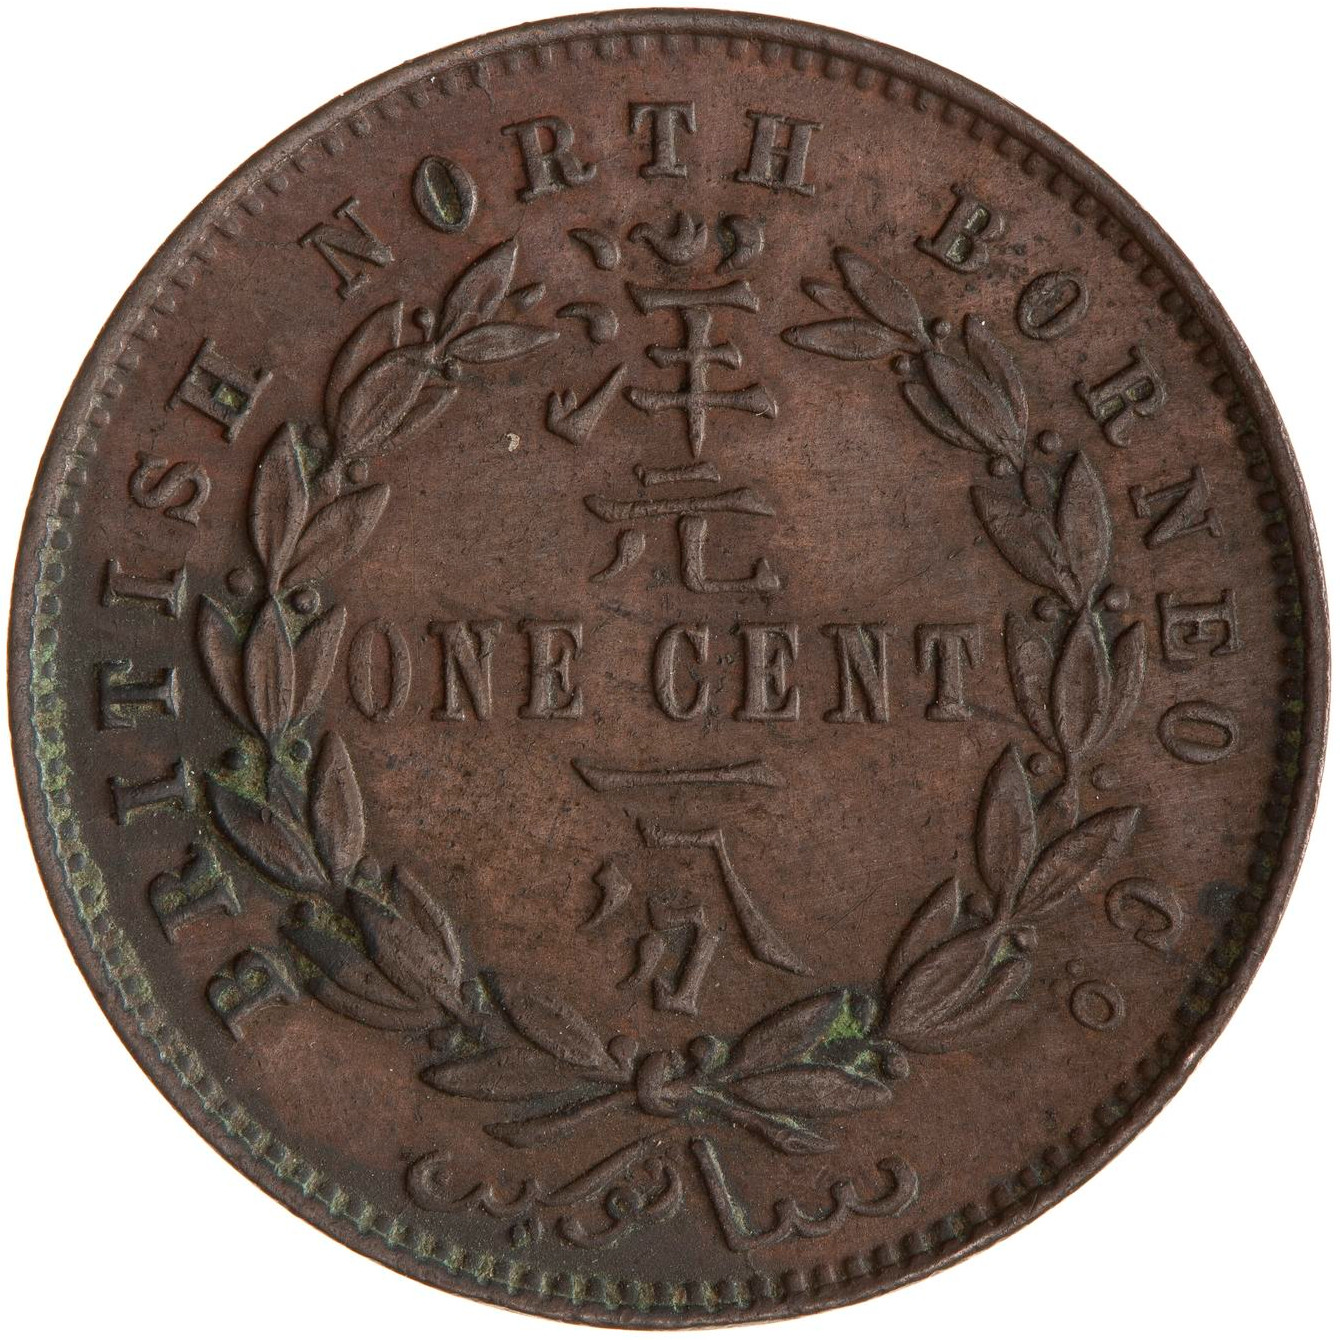 One Cent 1886: Photo Coin - 1 Cent, British North Borneo Company, 1886